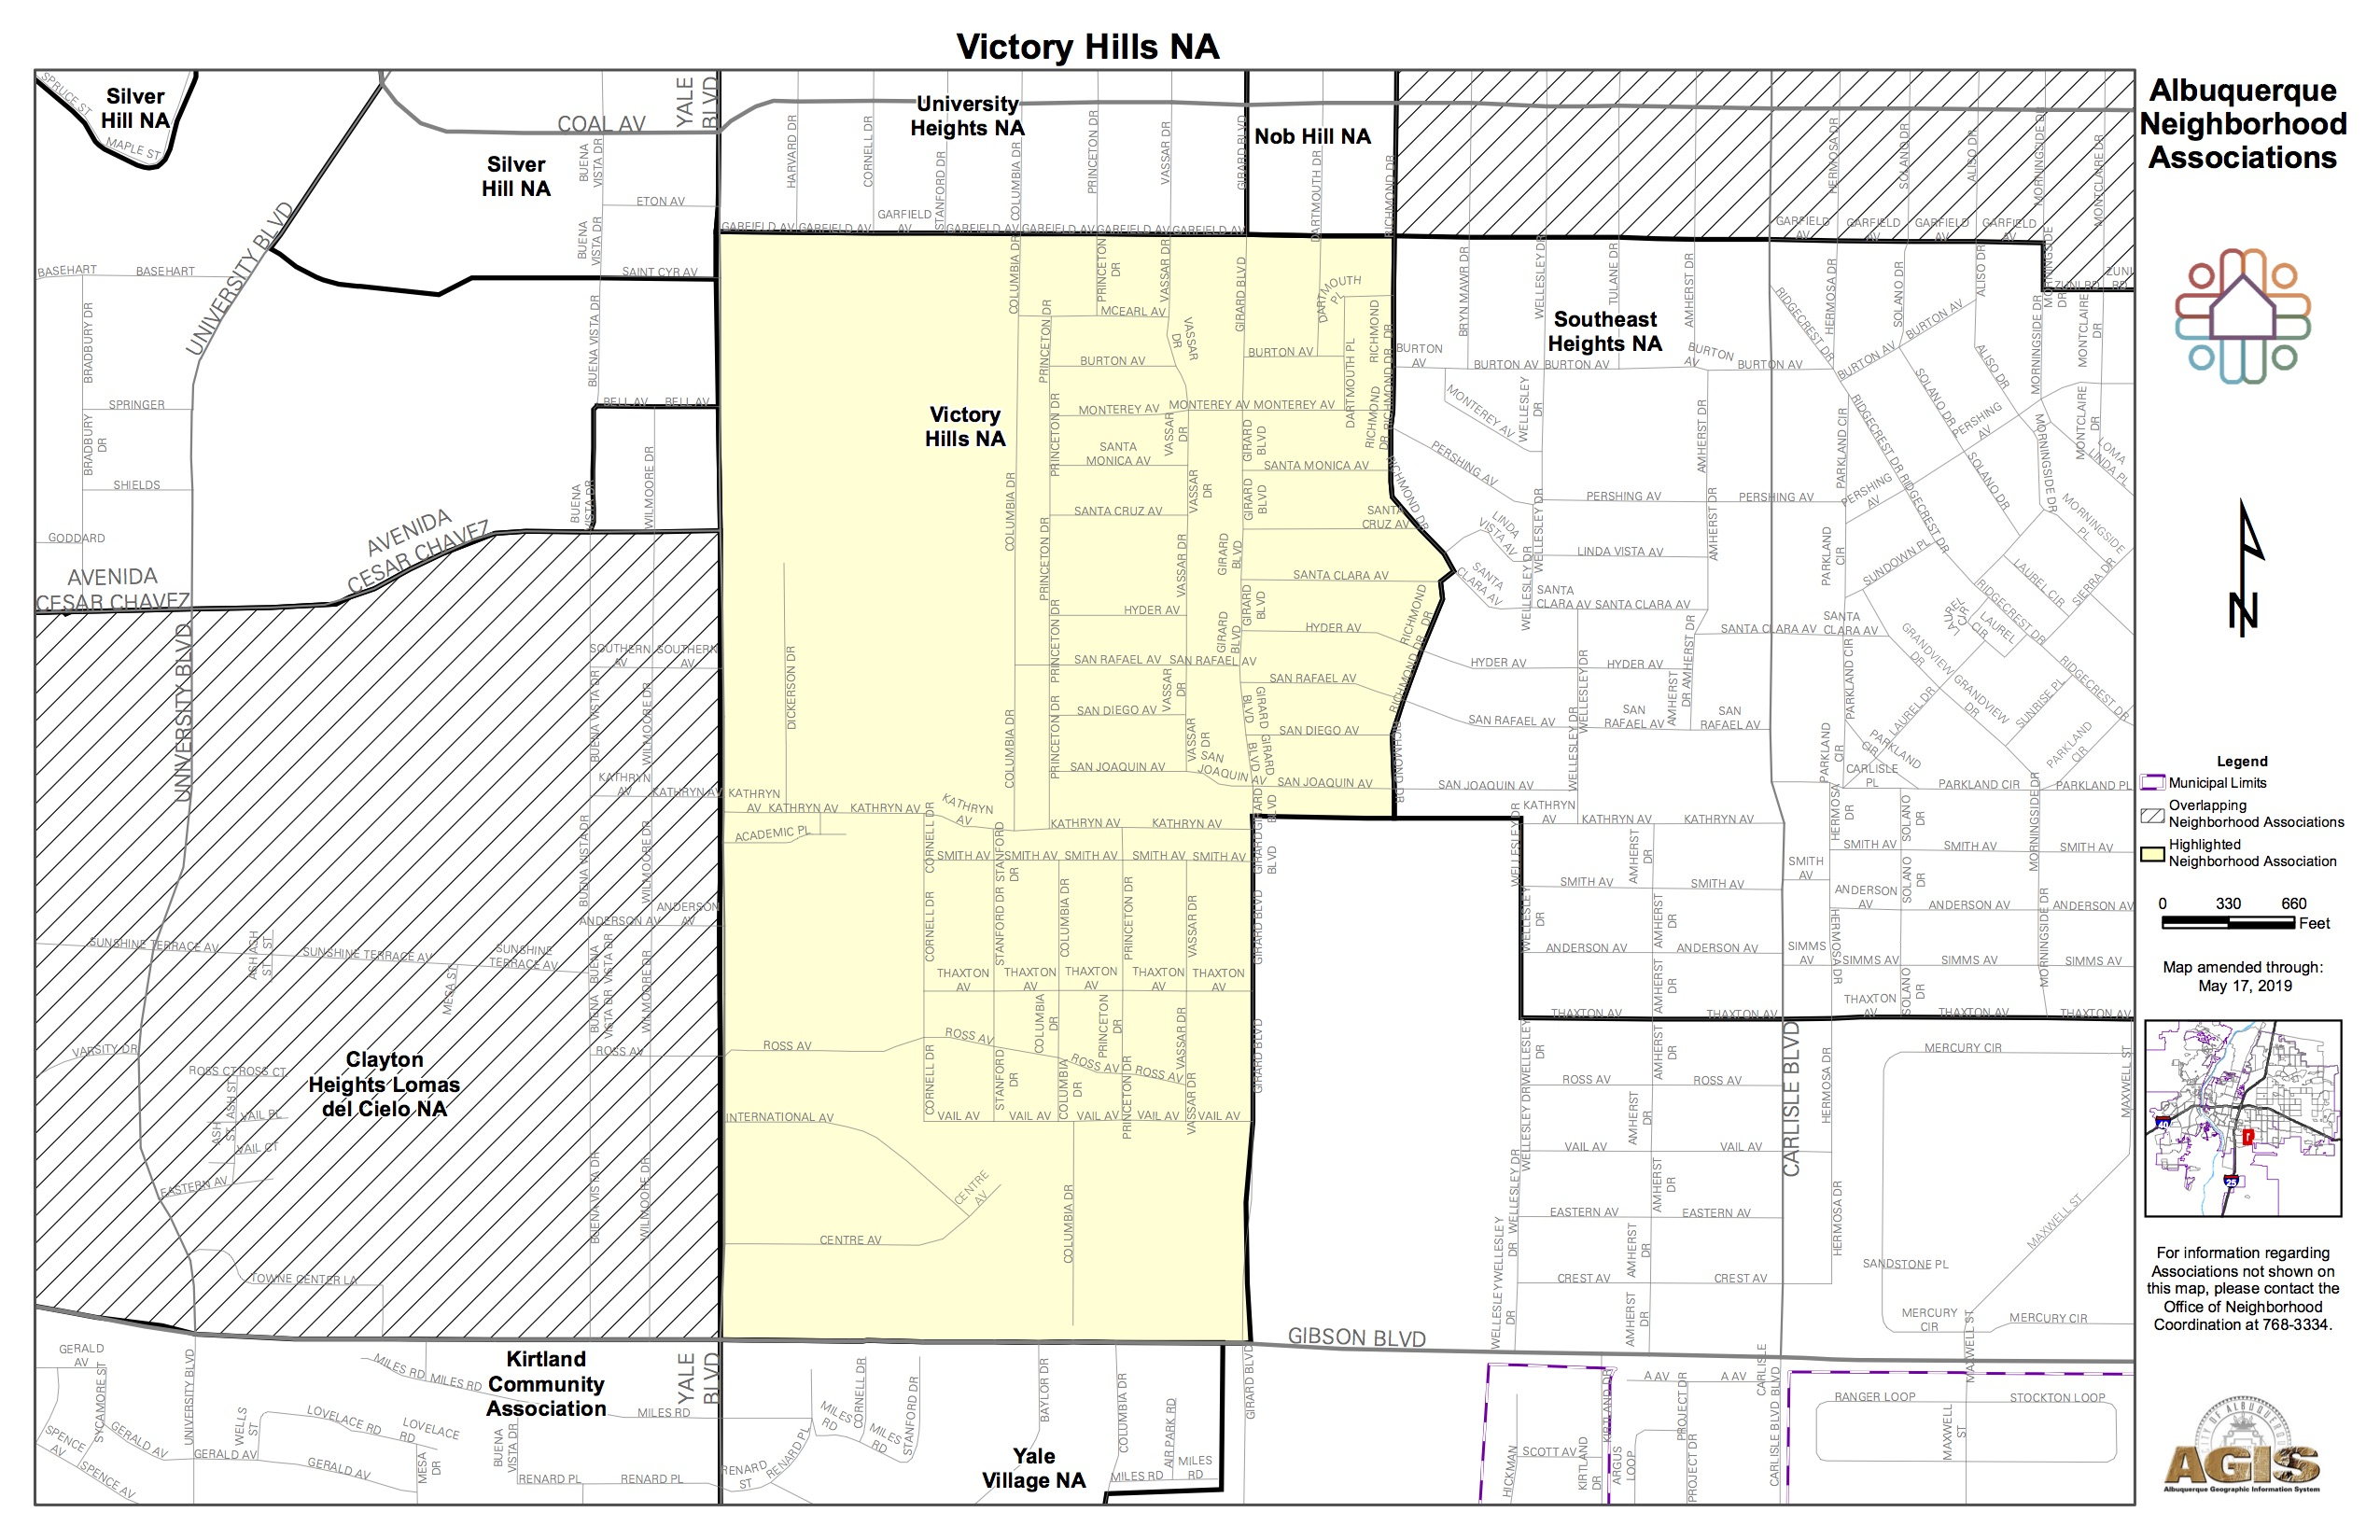 Adjacent Nob Hill Neighborhood Association Victory Hills Map